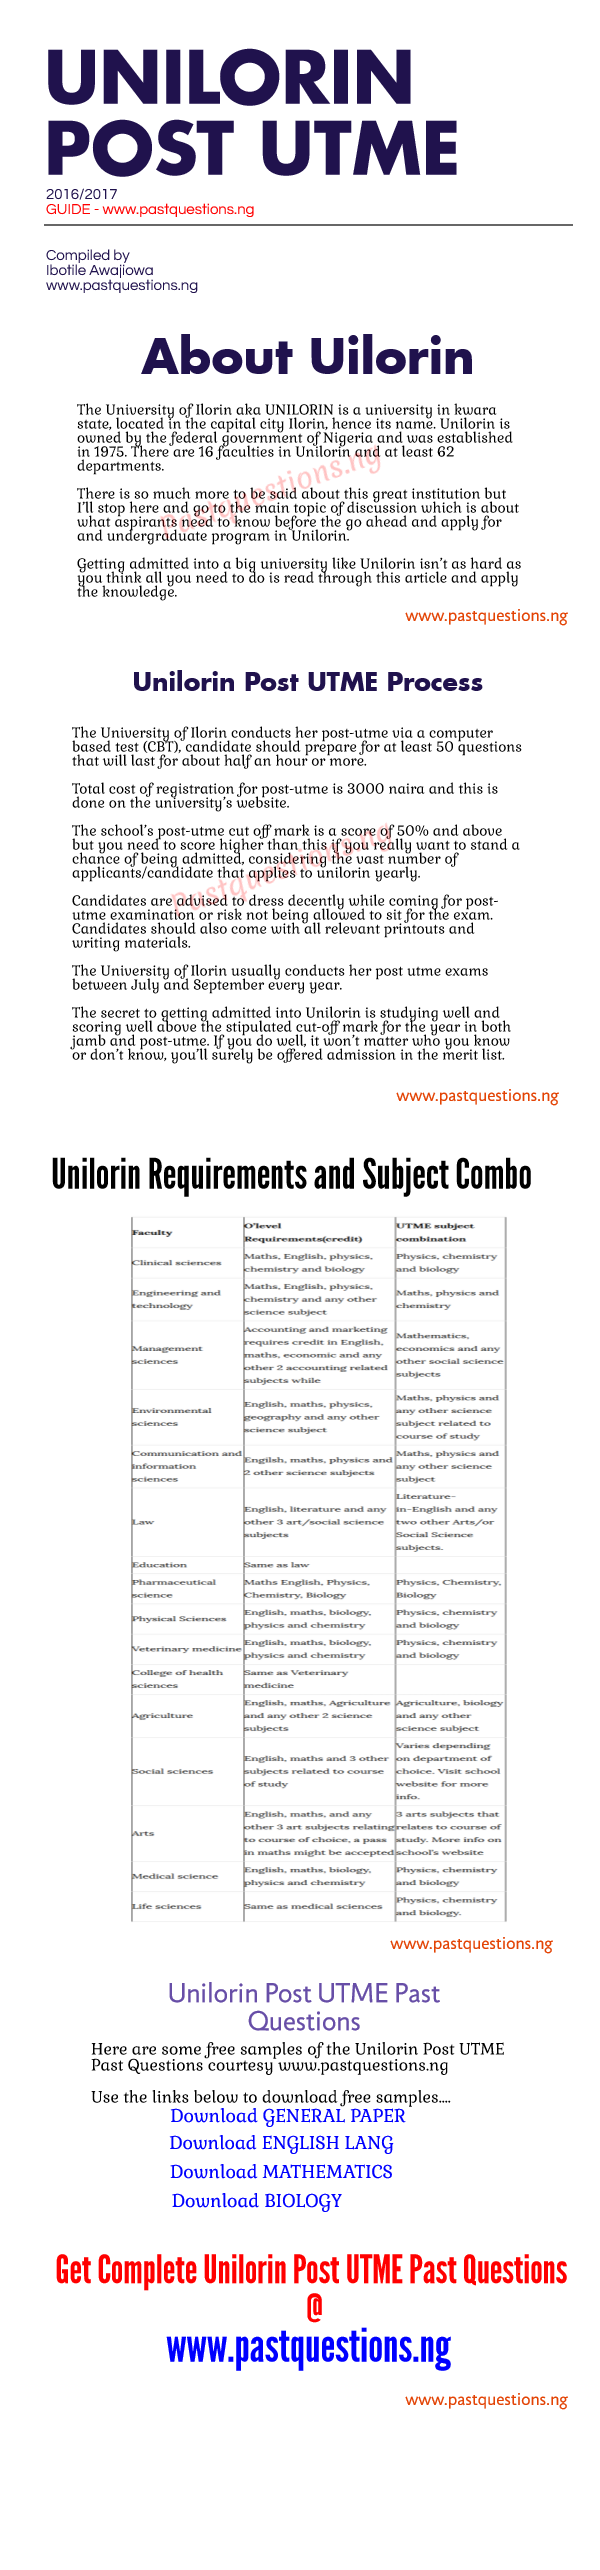 unilorin post utme infographic